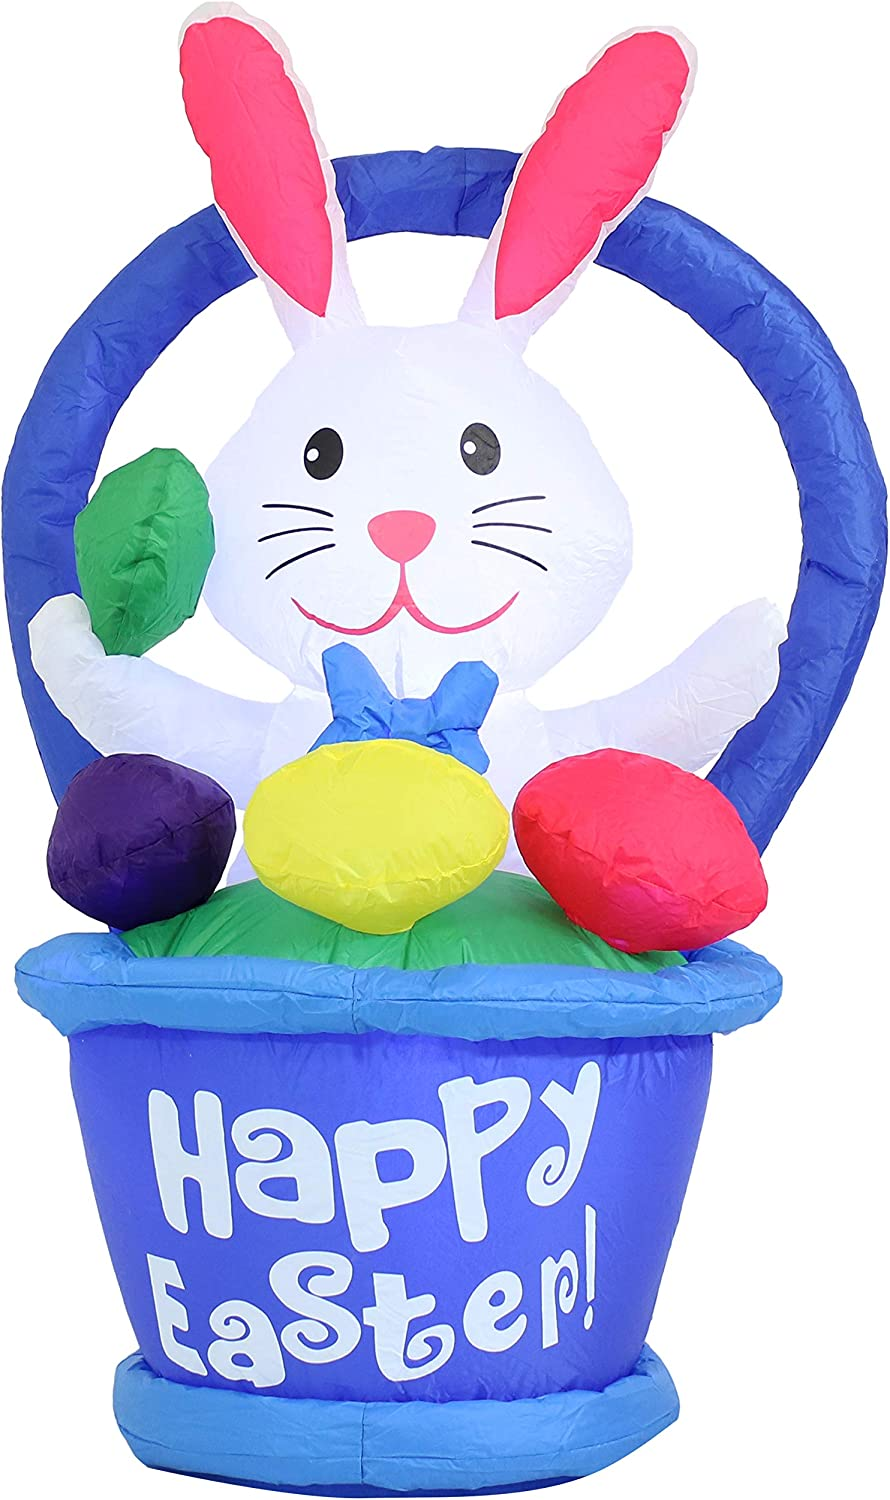 Sunnydaze Large Easter Inflatable Outdoor Decoration - 45-Inch Easter Bunny in Basket - Outdoor Celebration Blow-Up Yard and Garden Decor with Fan Blower and LED Lights